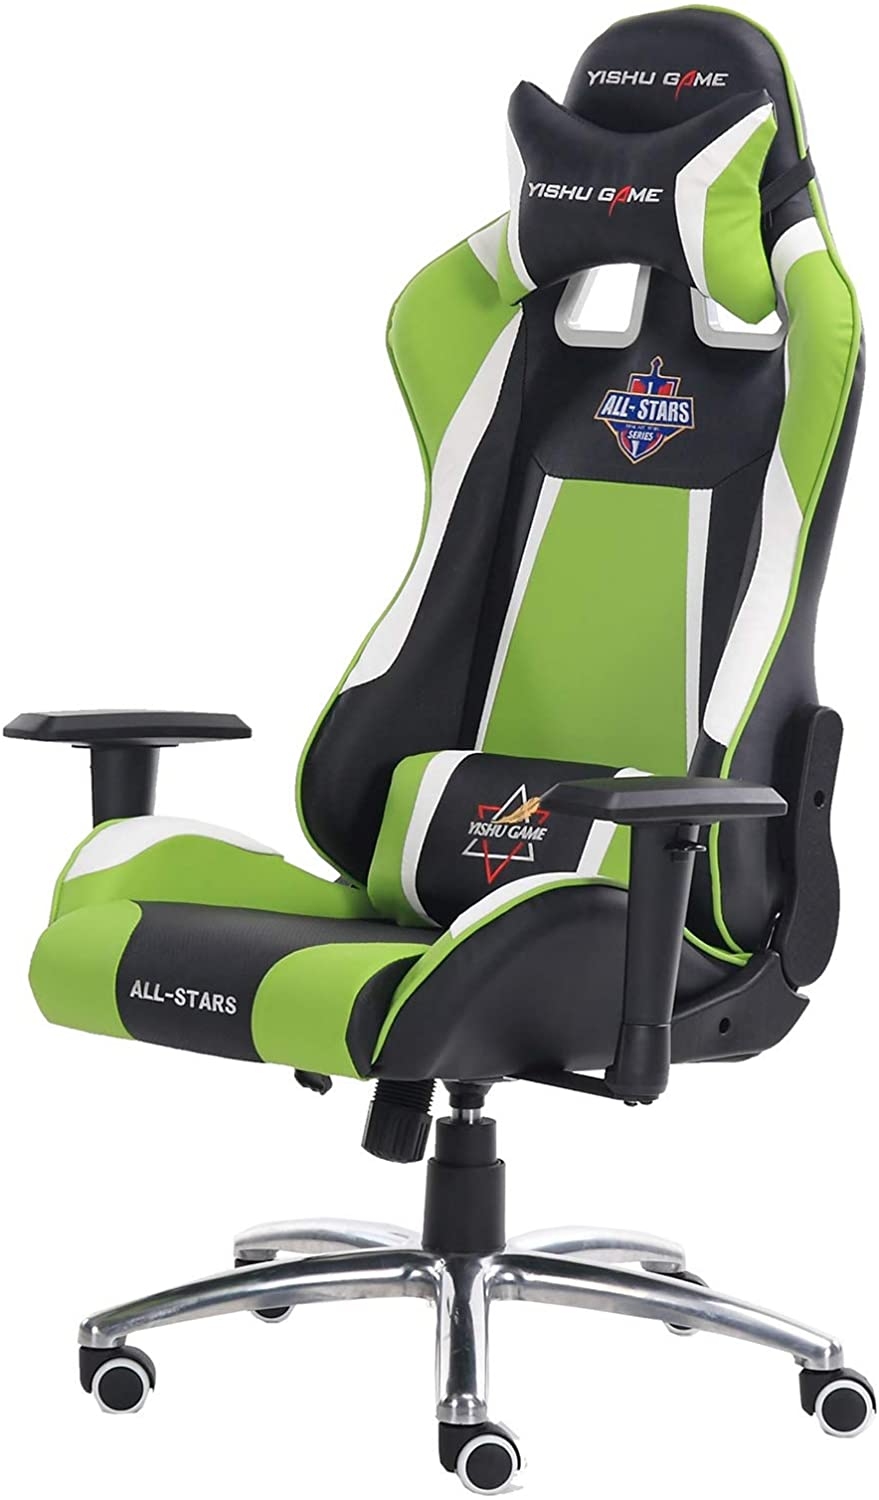 Gaming Chair - Designed With PU Leather, High Density Foam & Metal Frame Inside, 2 Pillows, Butterfly Mechanism, 50mm Diameter - Black, White & Green